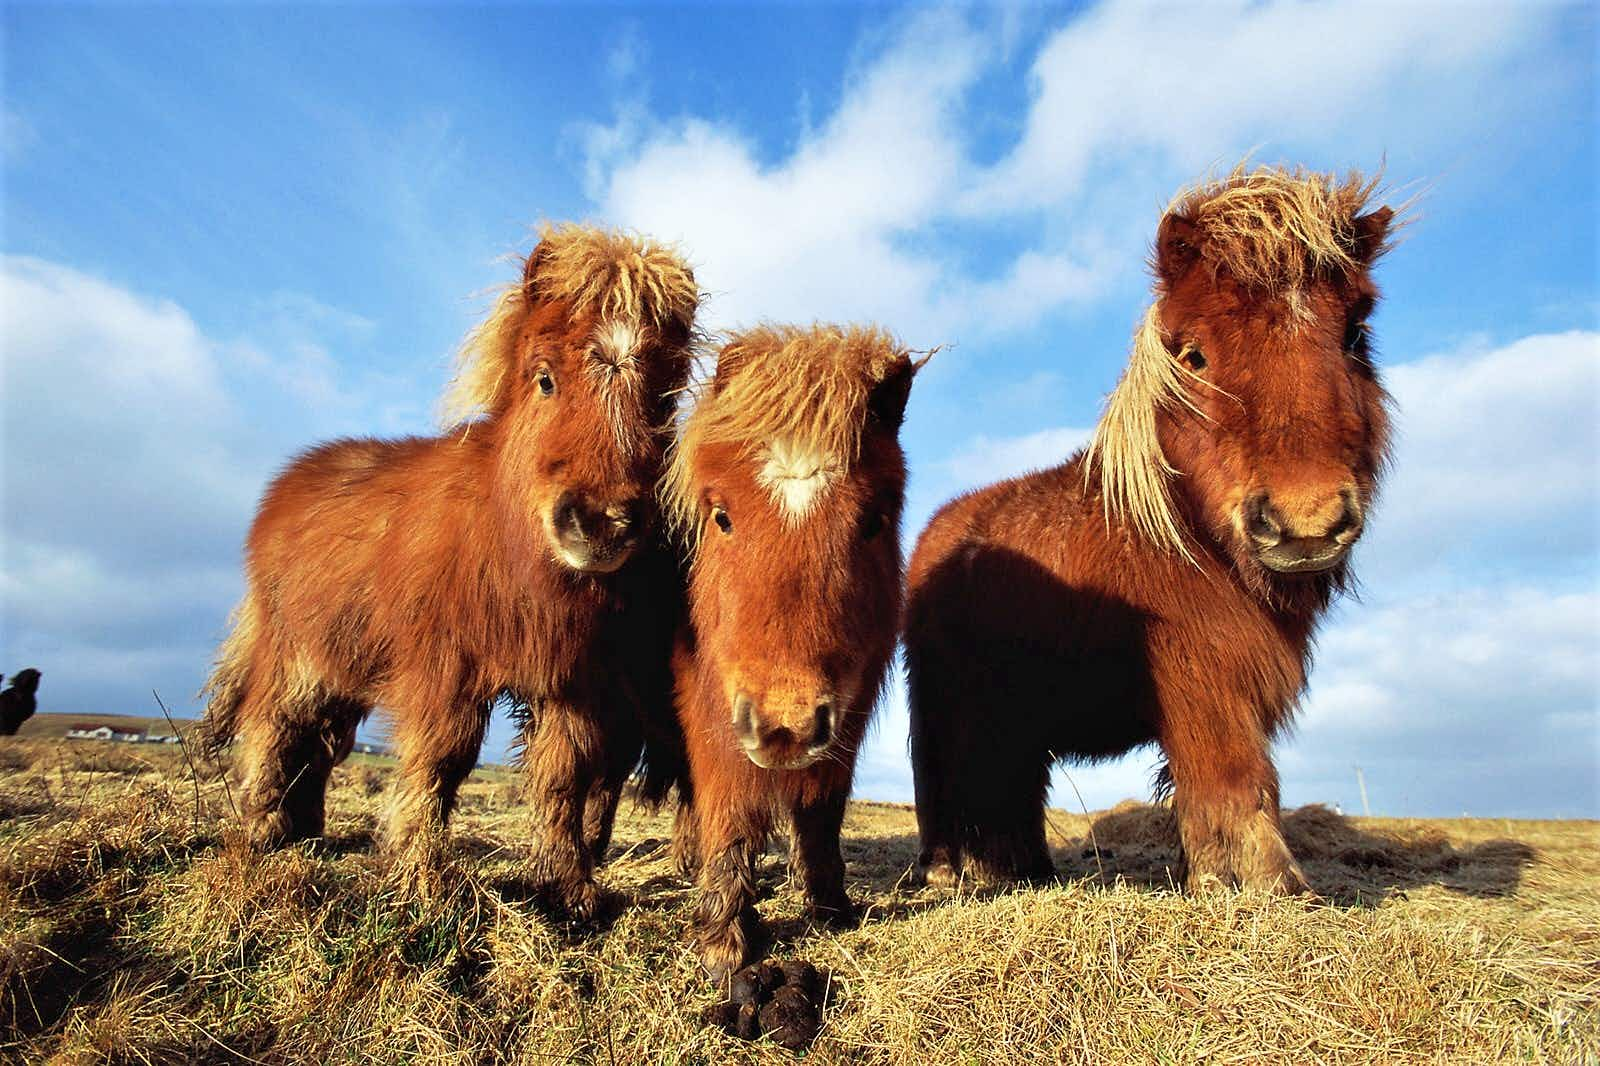 Three Shetland ponies look curiously at the viewer